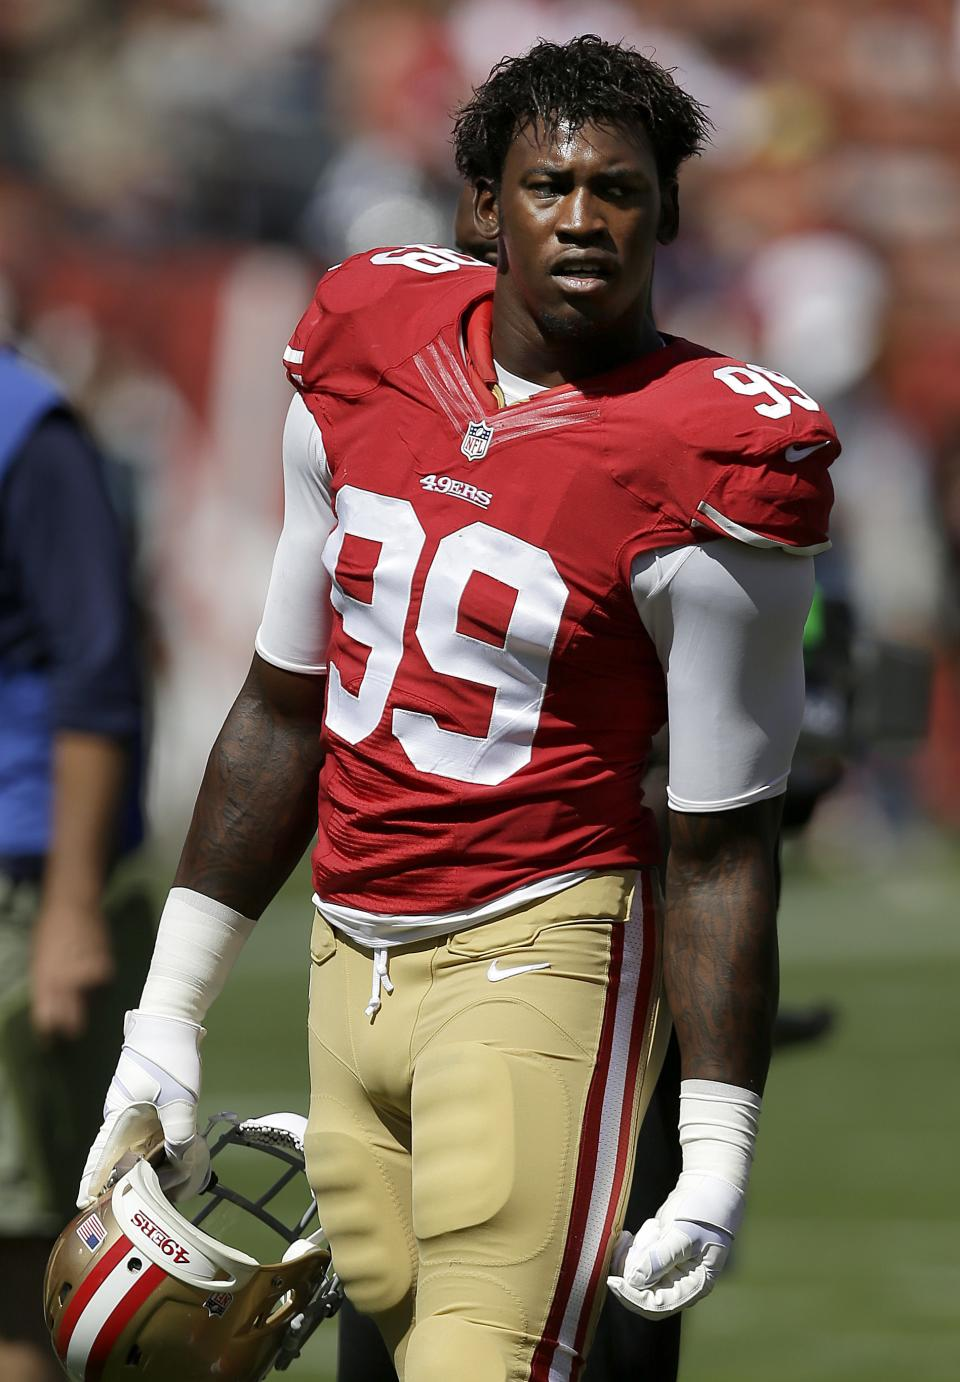 49ers linebacker Aldon Smith activated